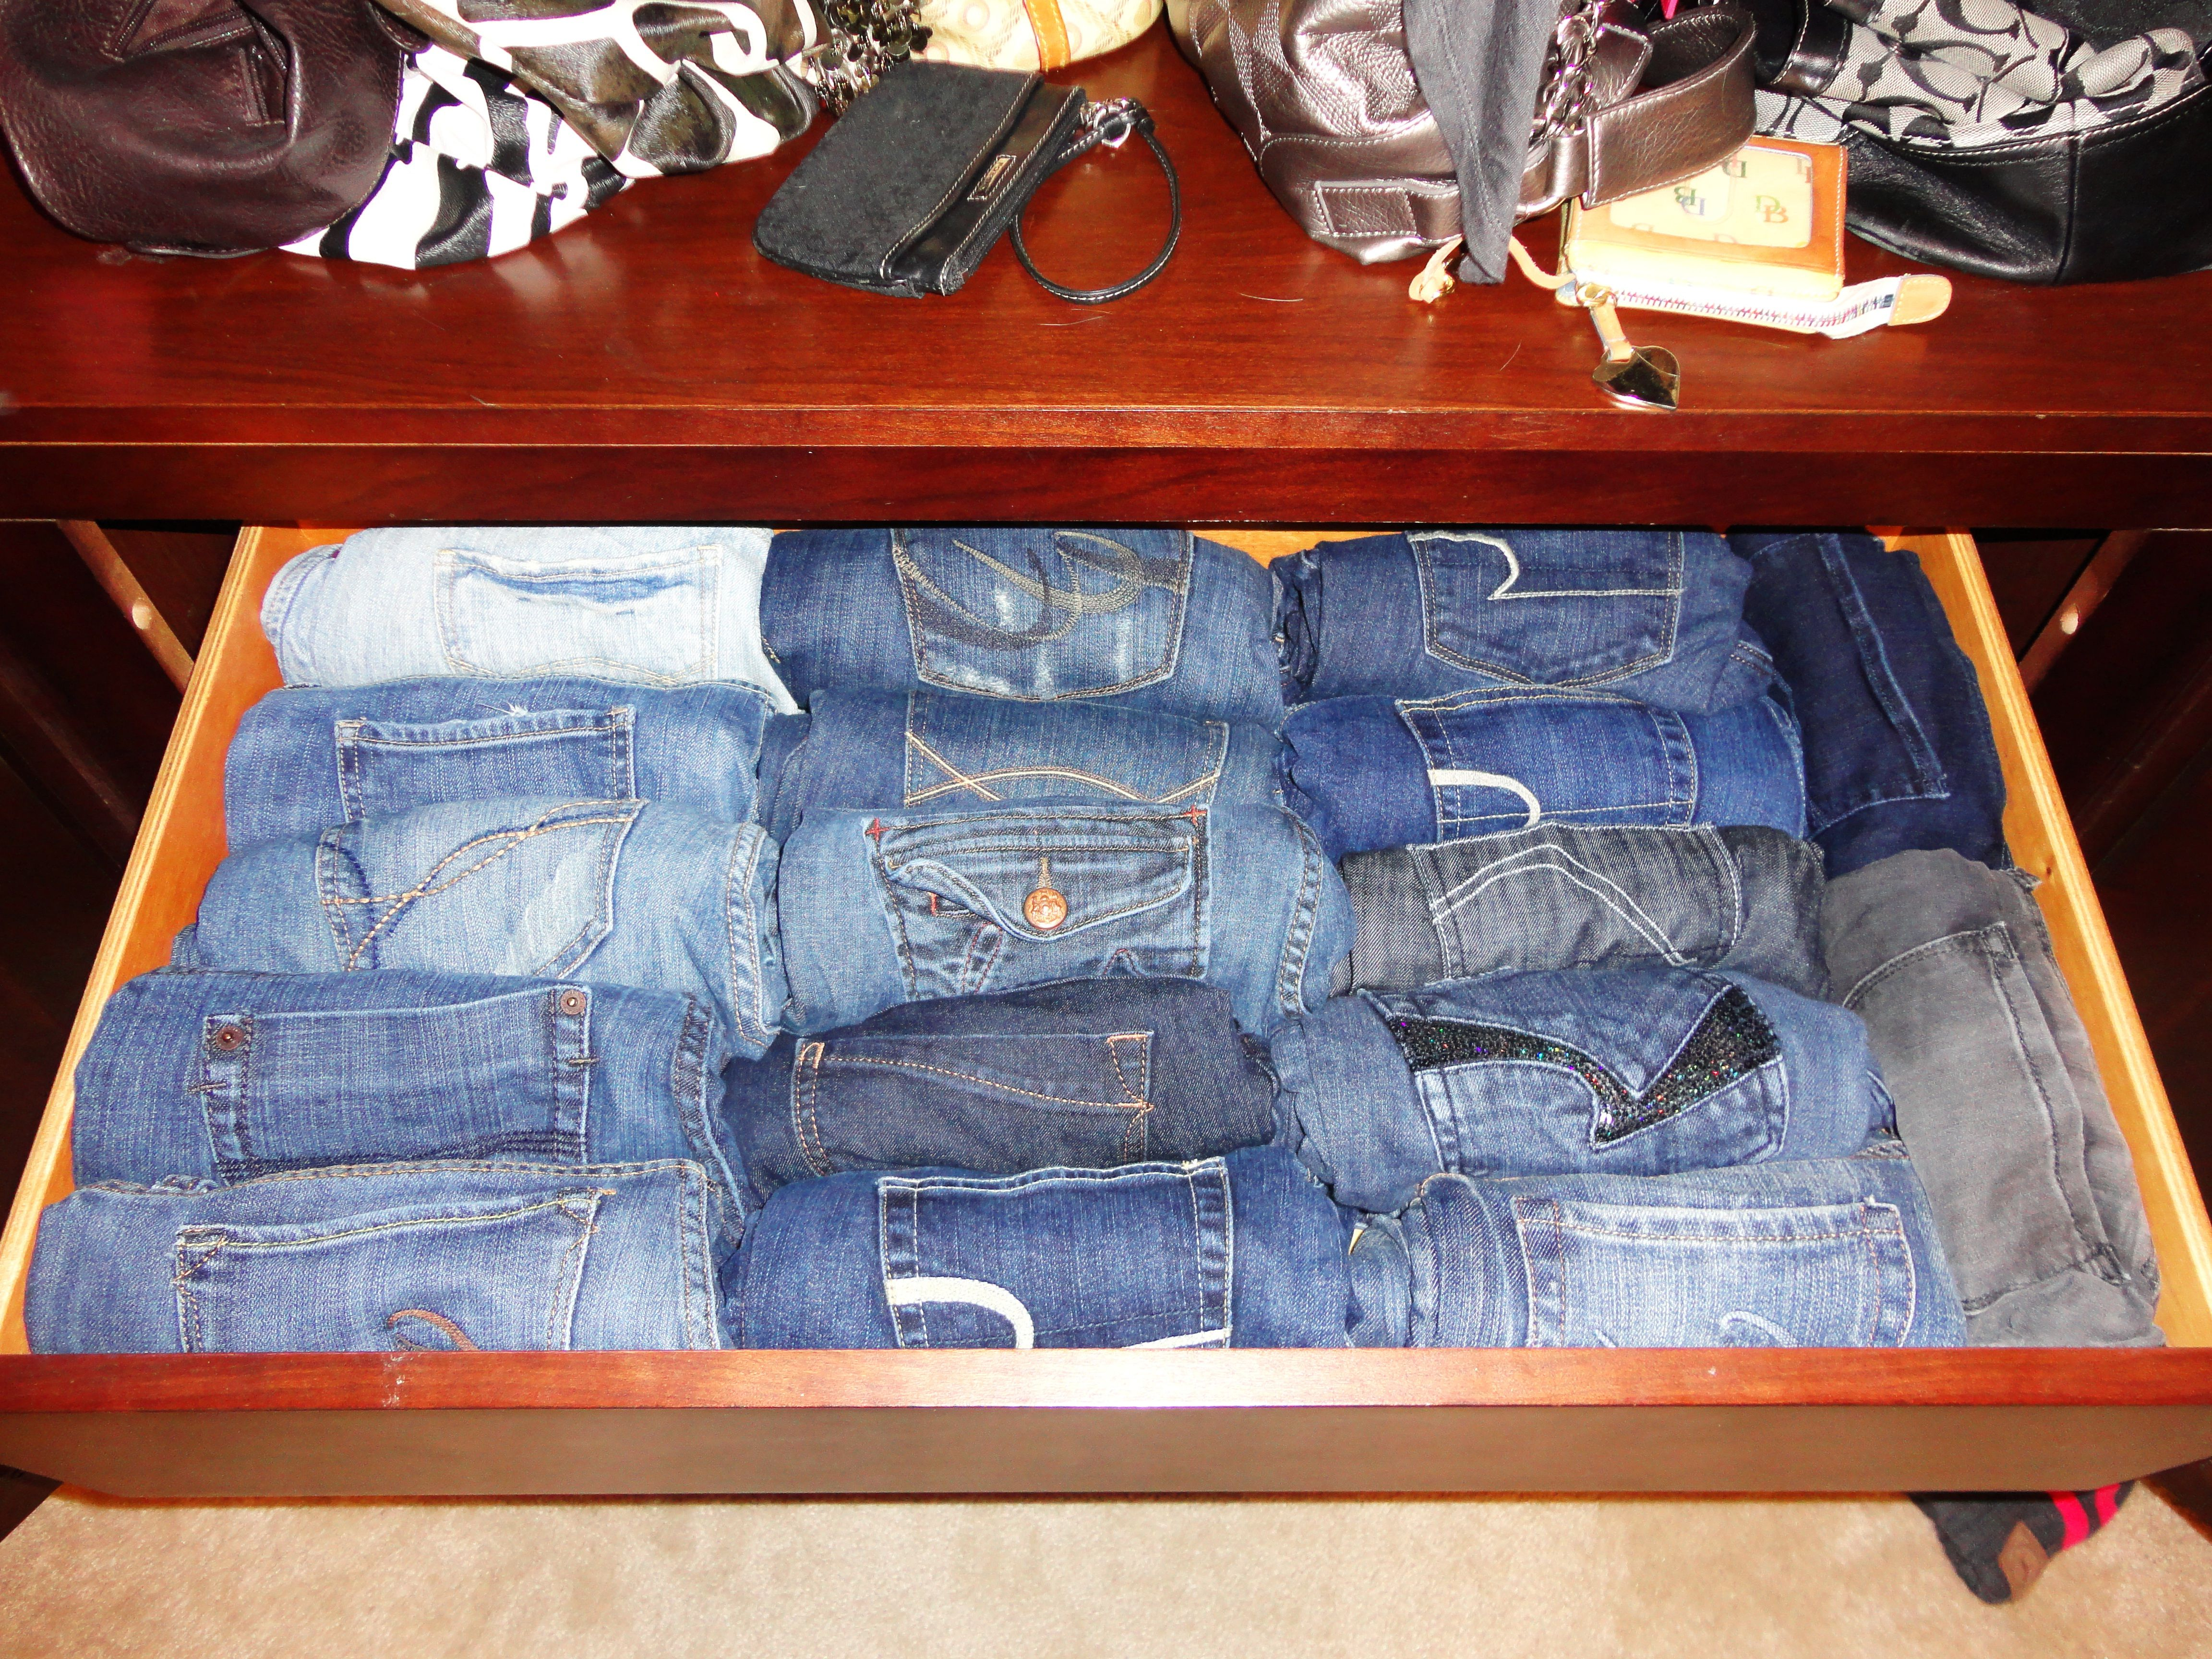 Organize Your Jeans Roll Them And Place Them In A